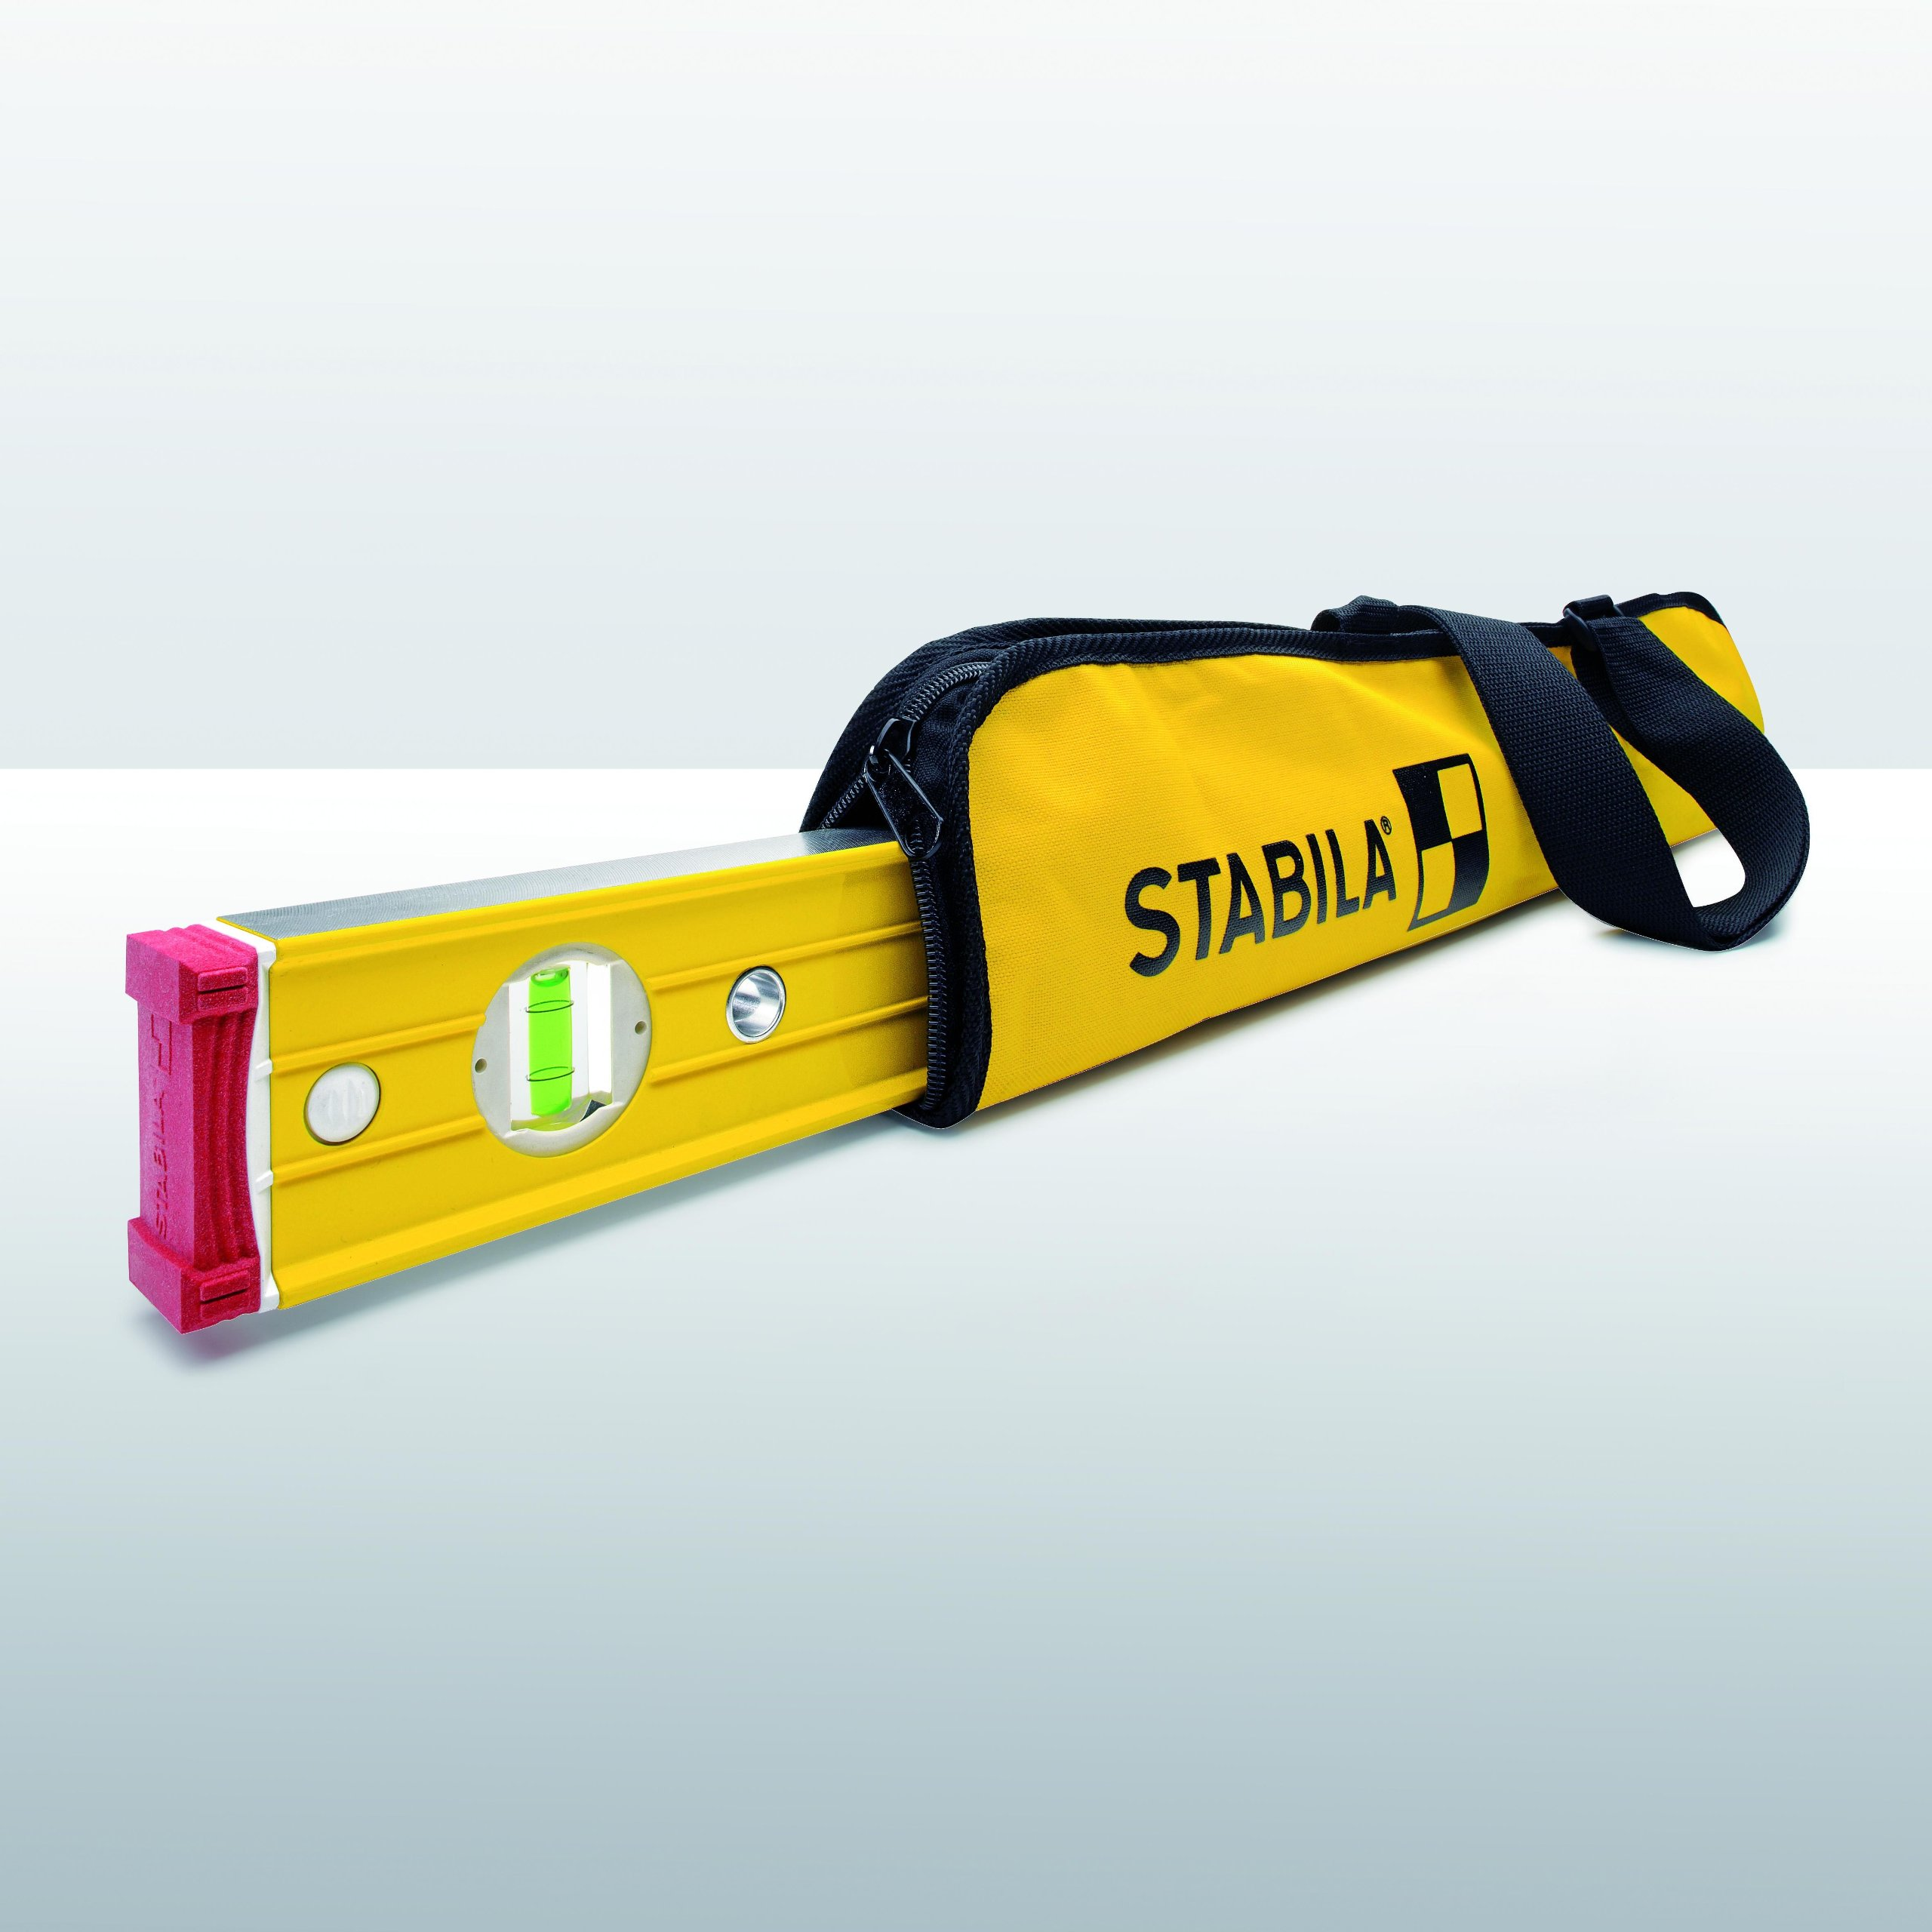 Stabila STB196E-2-120P 120cm Electronic Spirit Level IP65 Rated